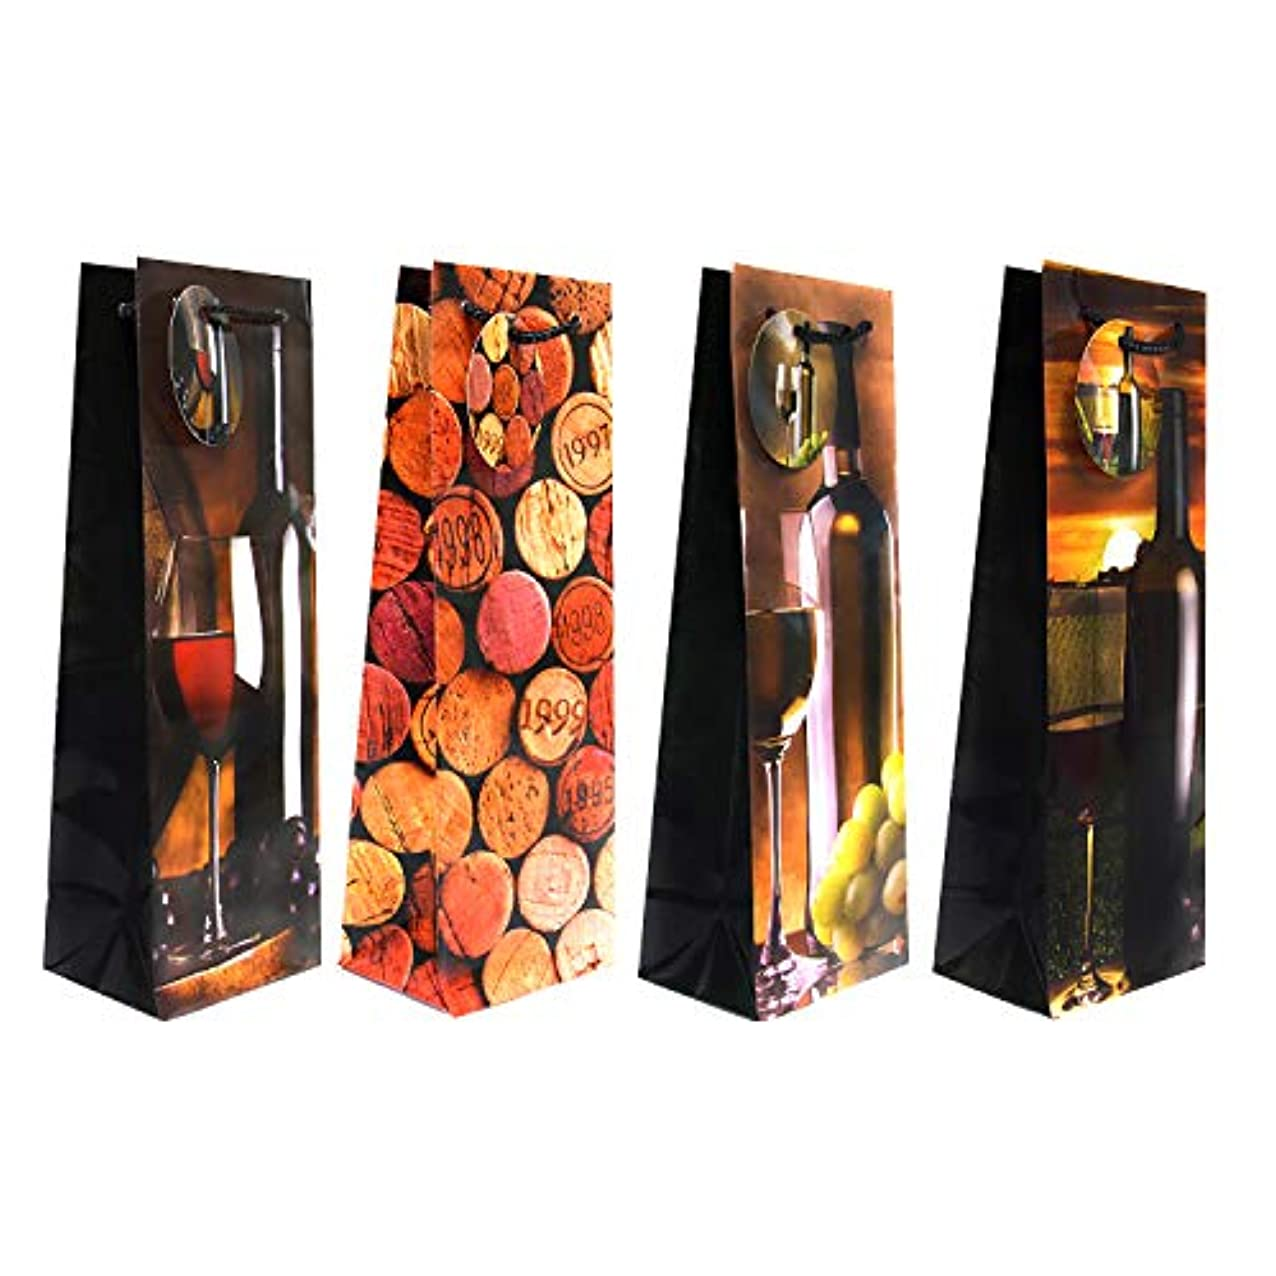 12 pc, Wine Gift Bags, Classic and Modern Wine Gift Bag Set of 4 Designs qqnrrdtsqdekv196